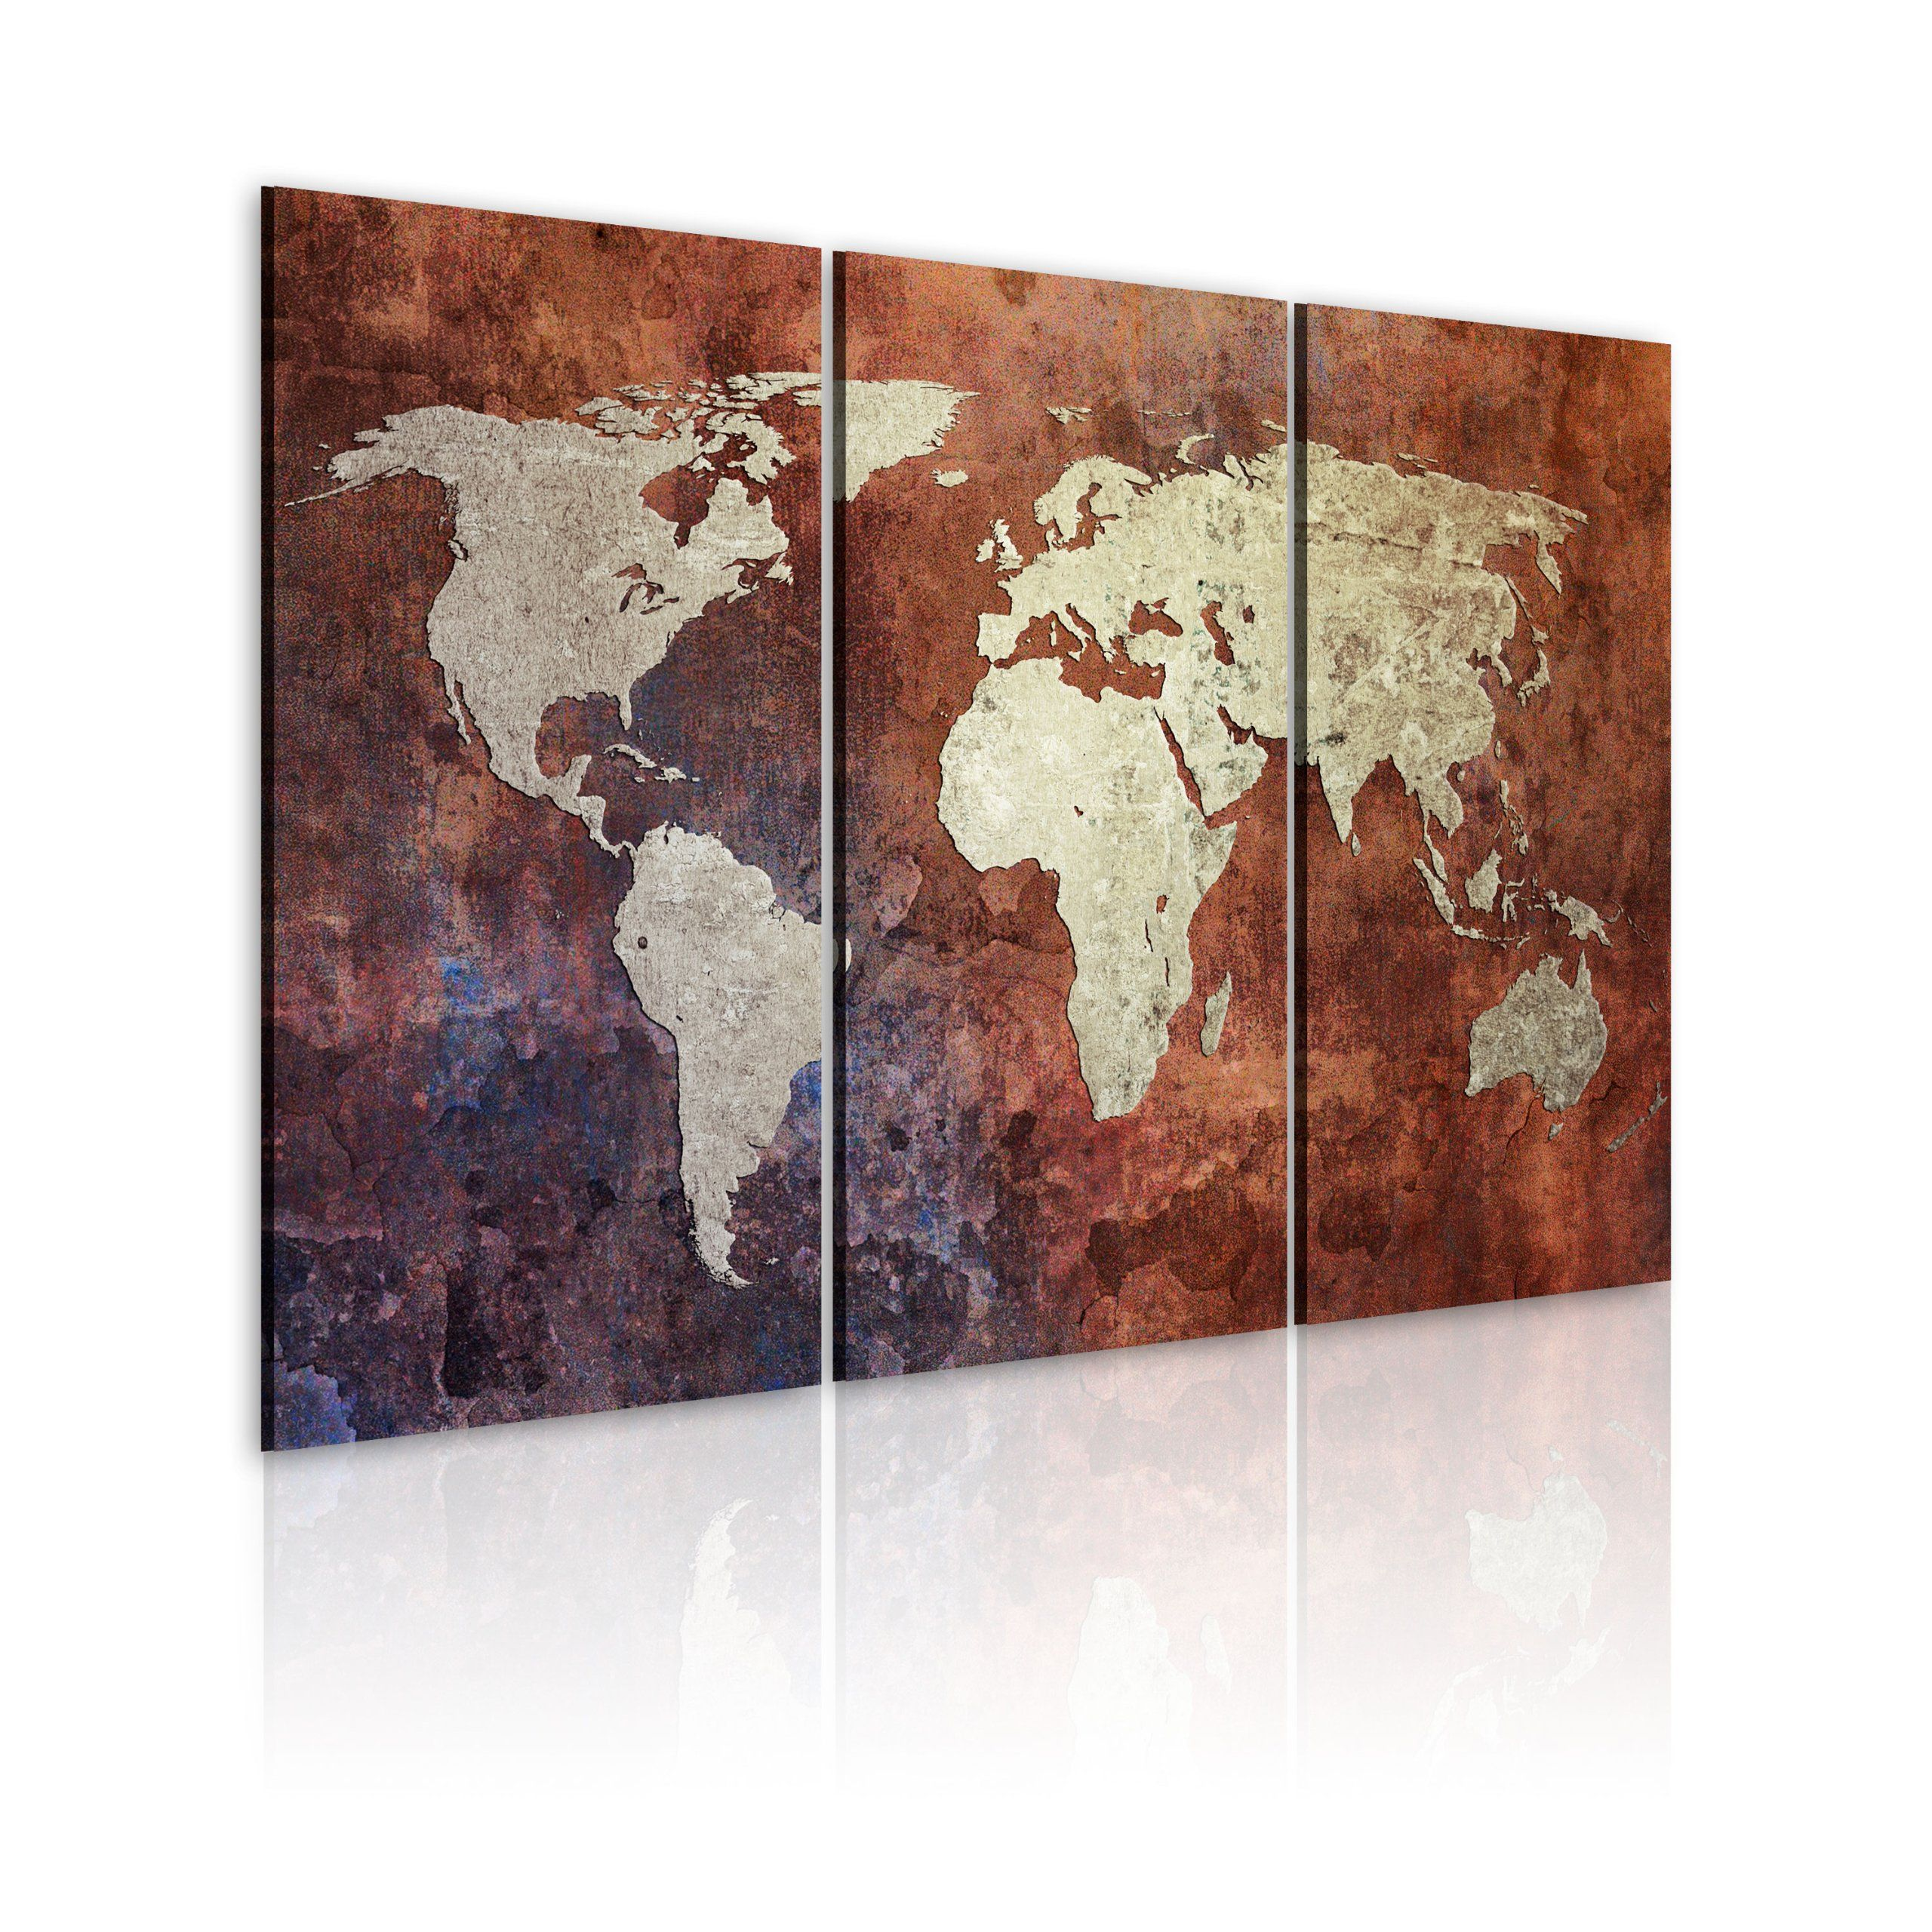 carte du monde murale grand format Grand Format + Impression sur toile + Images + 3 Parties + carte